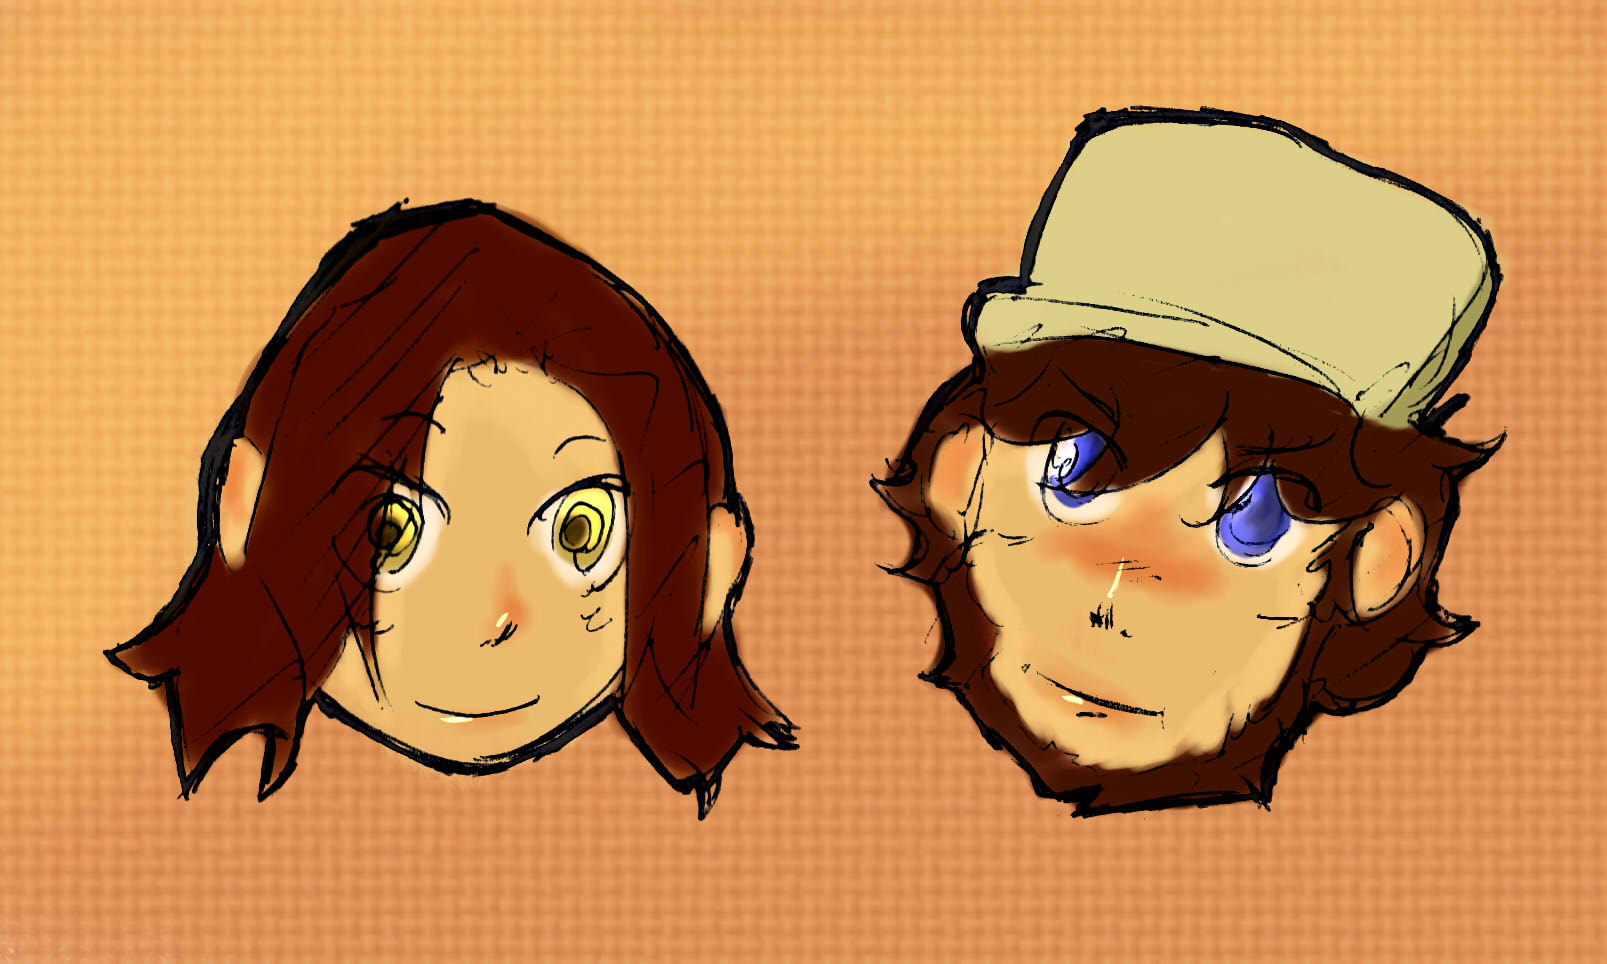 WE ARE THE GAME GRUMPS